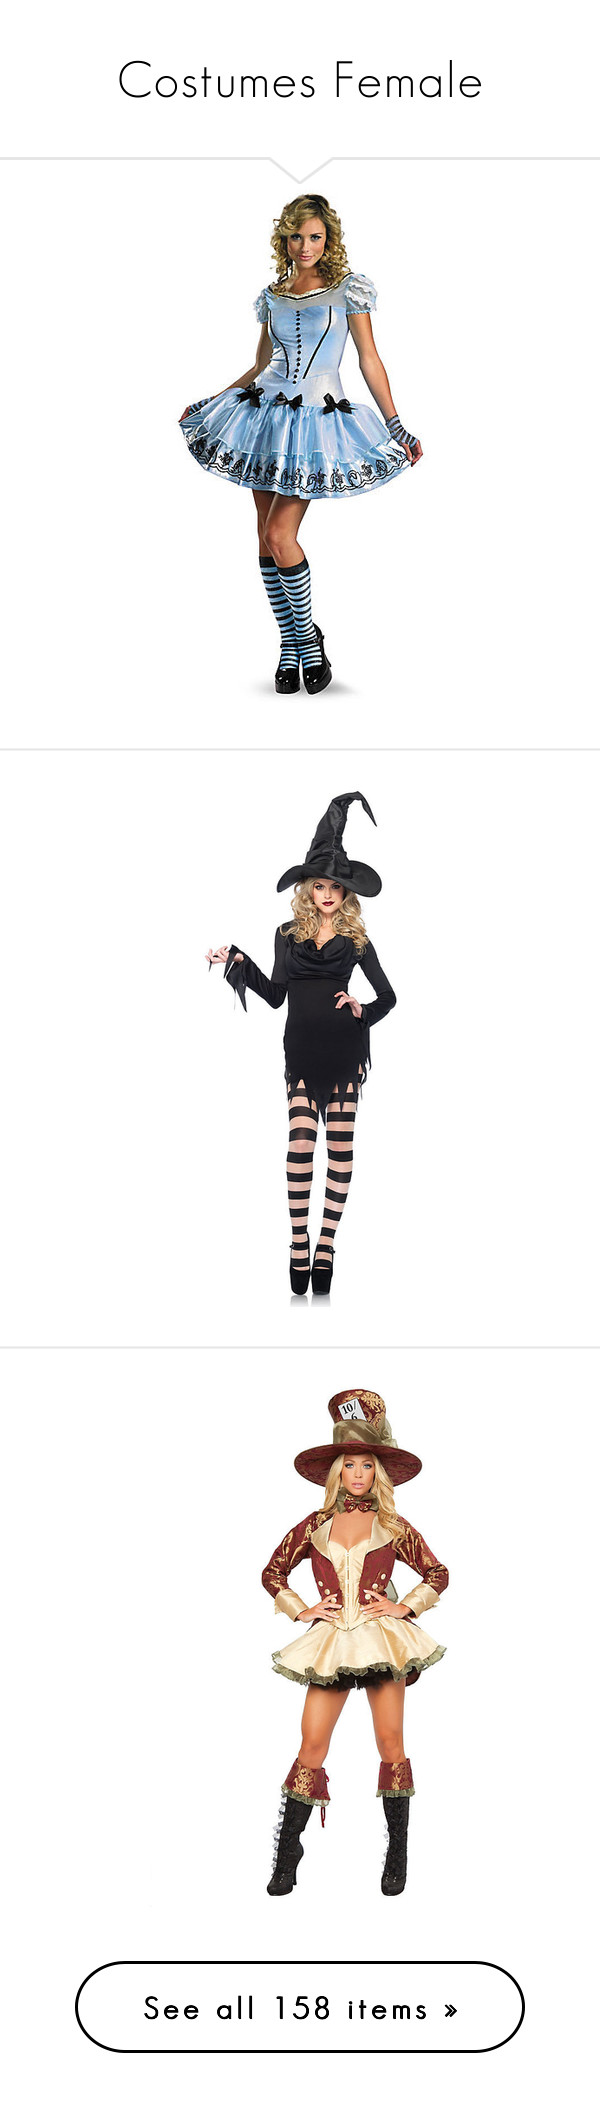 """""""Costumes Female"""" by thamaravilhosa88 ❤ liked on Polyvore featuring costumes, dresses, halloween costumes, multicolor, alice in wonderland costume, womens halloween costumes, sexy alice costume, sexy lady costumes, womens alice in wonderland costume and womens witch costume"""